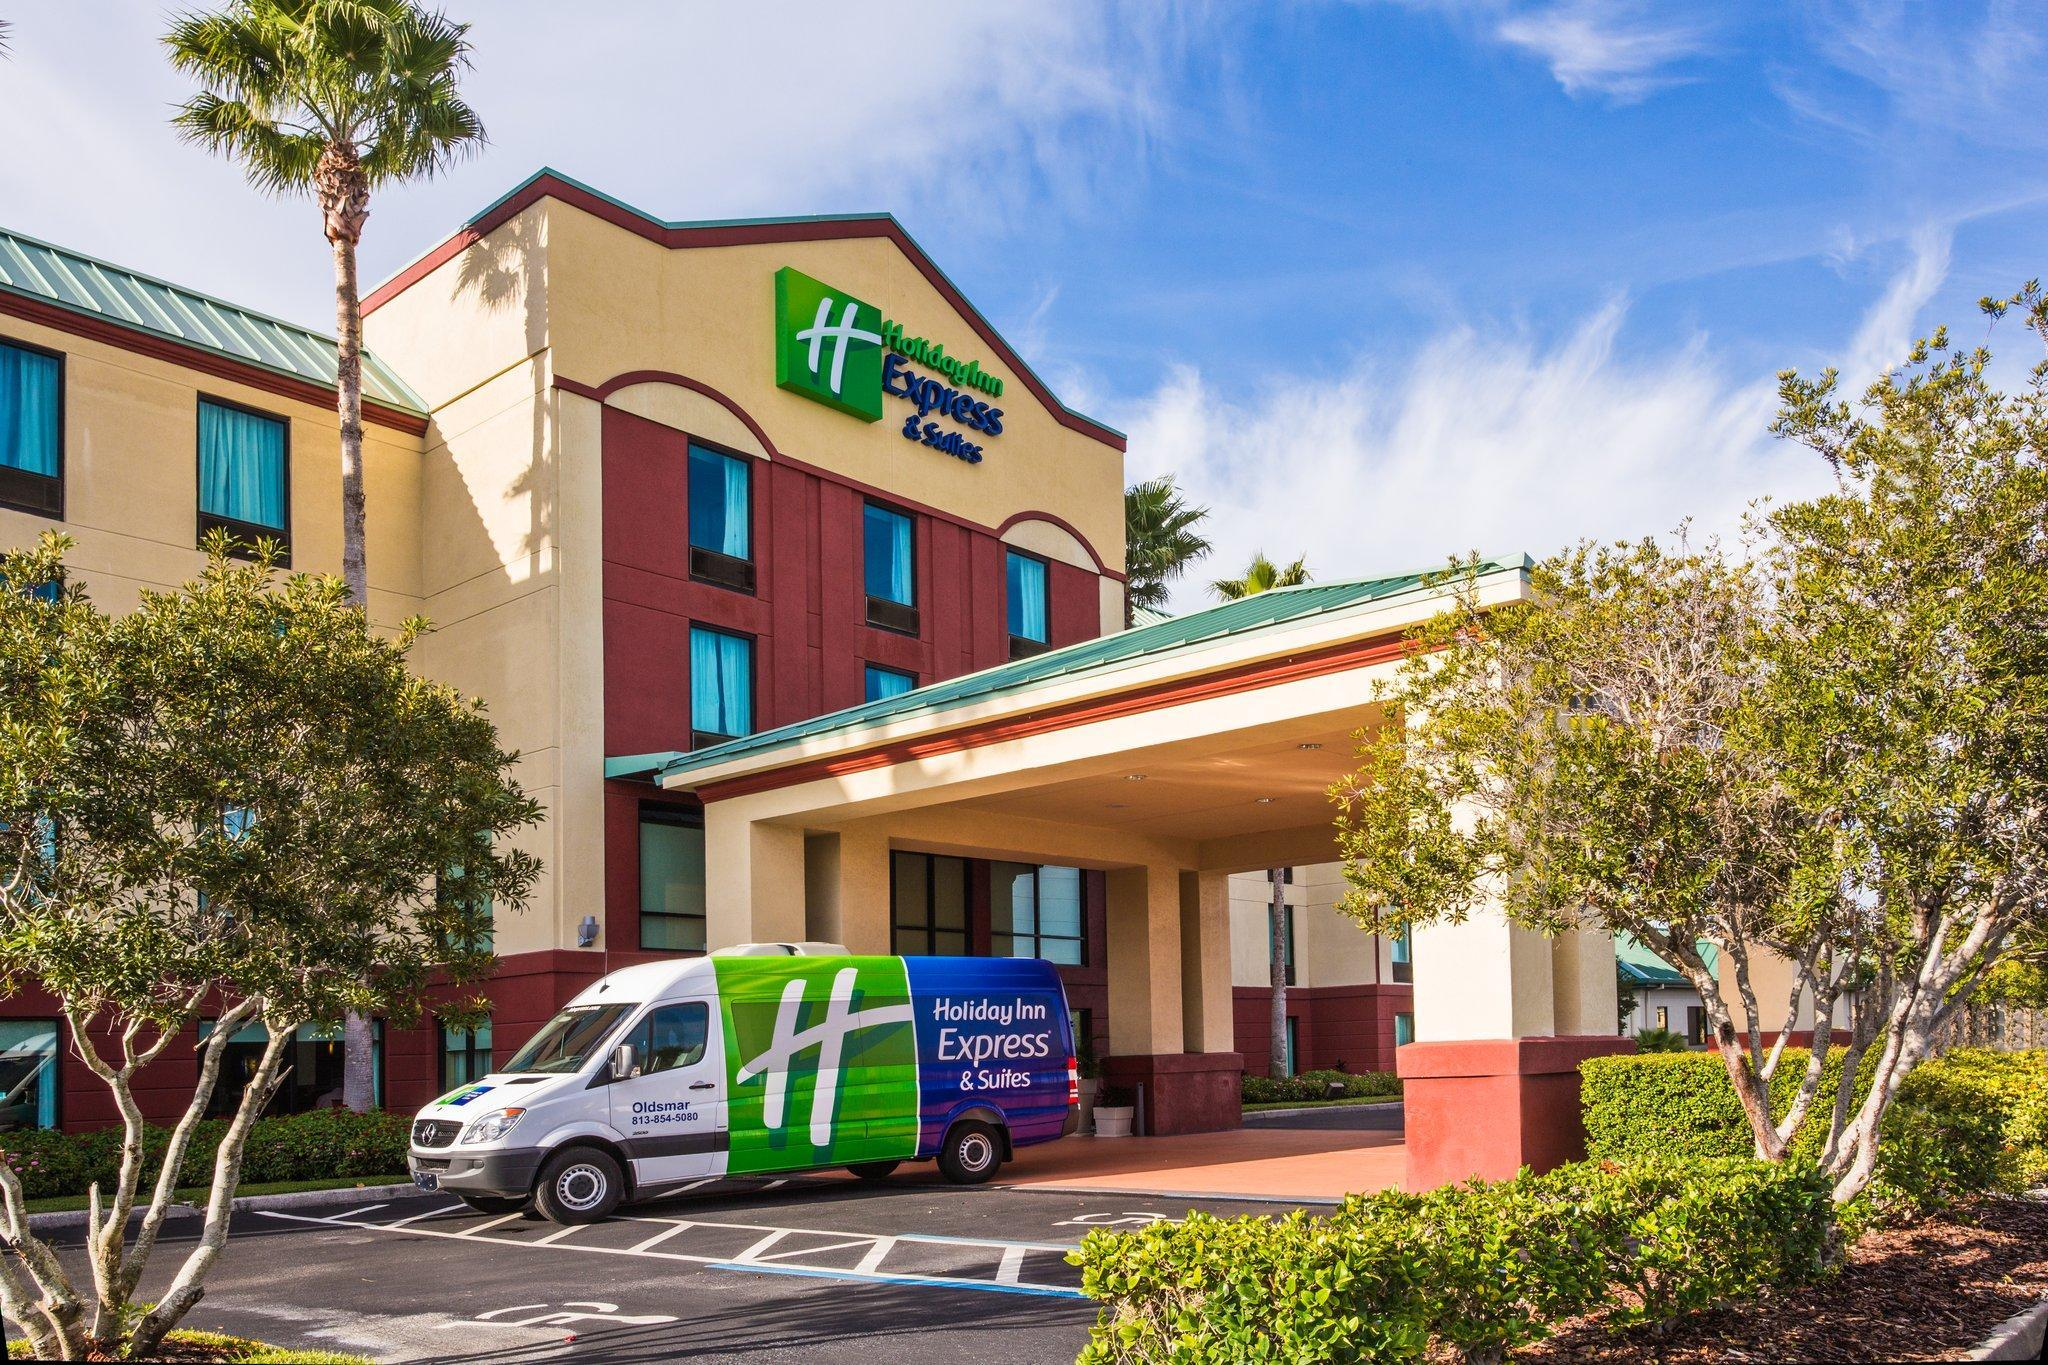 Holiday Inn Express Hotel And Suites Tampa Oldsmar